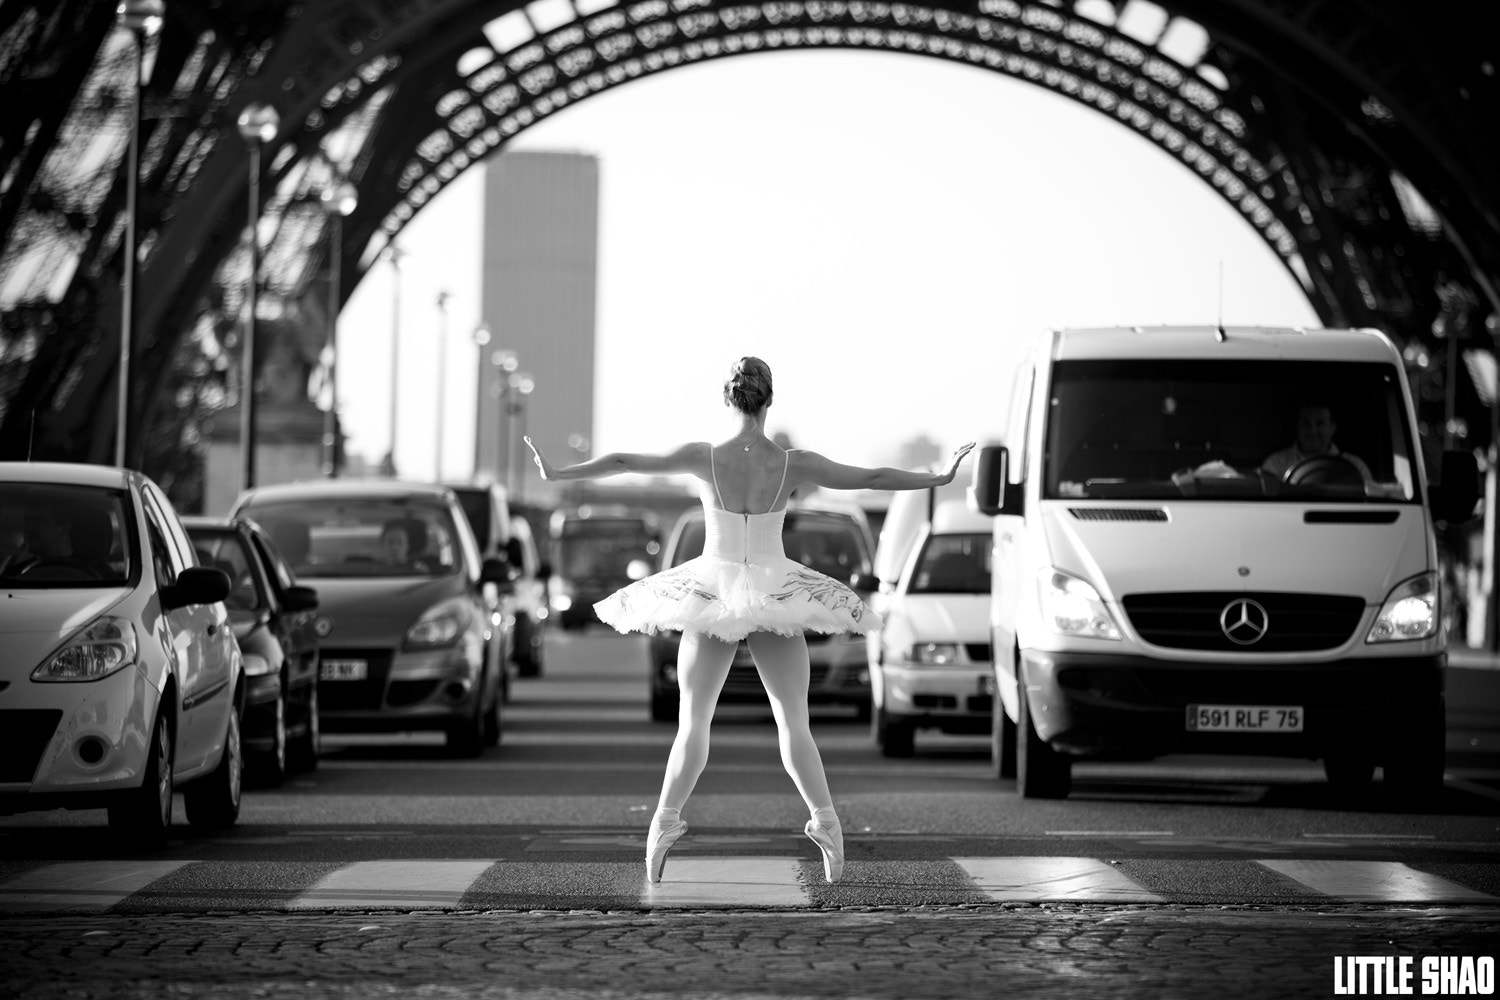 Photograph Ballerina Cars Stopper by Little Shao on 500px